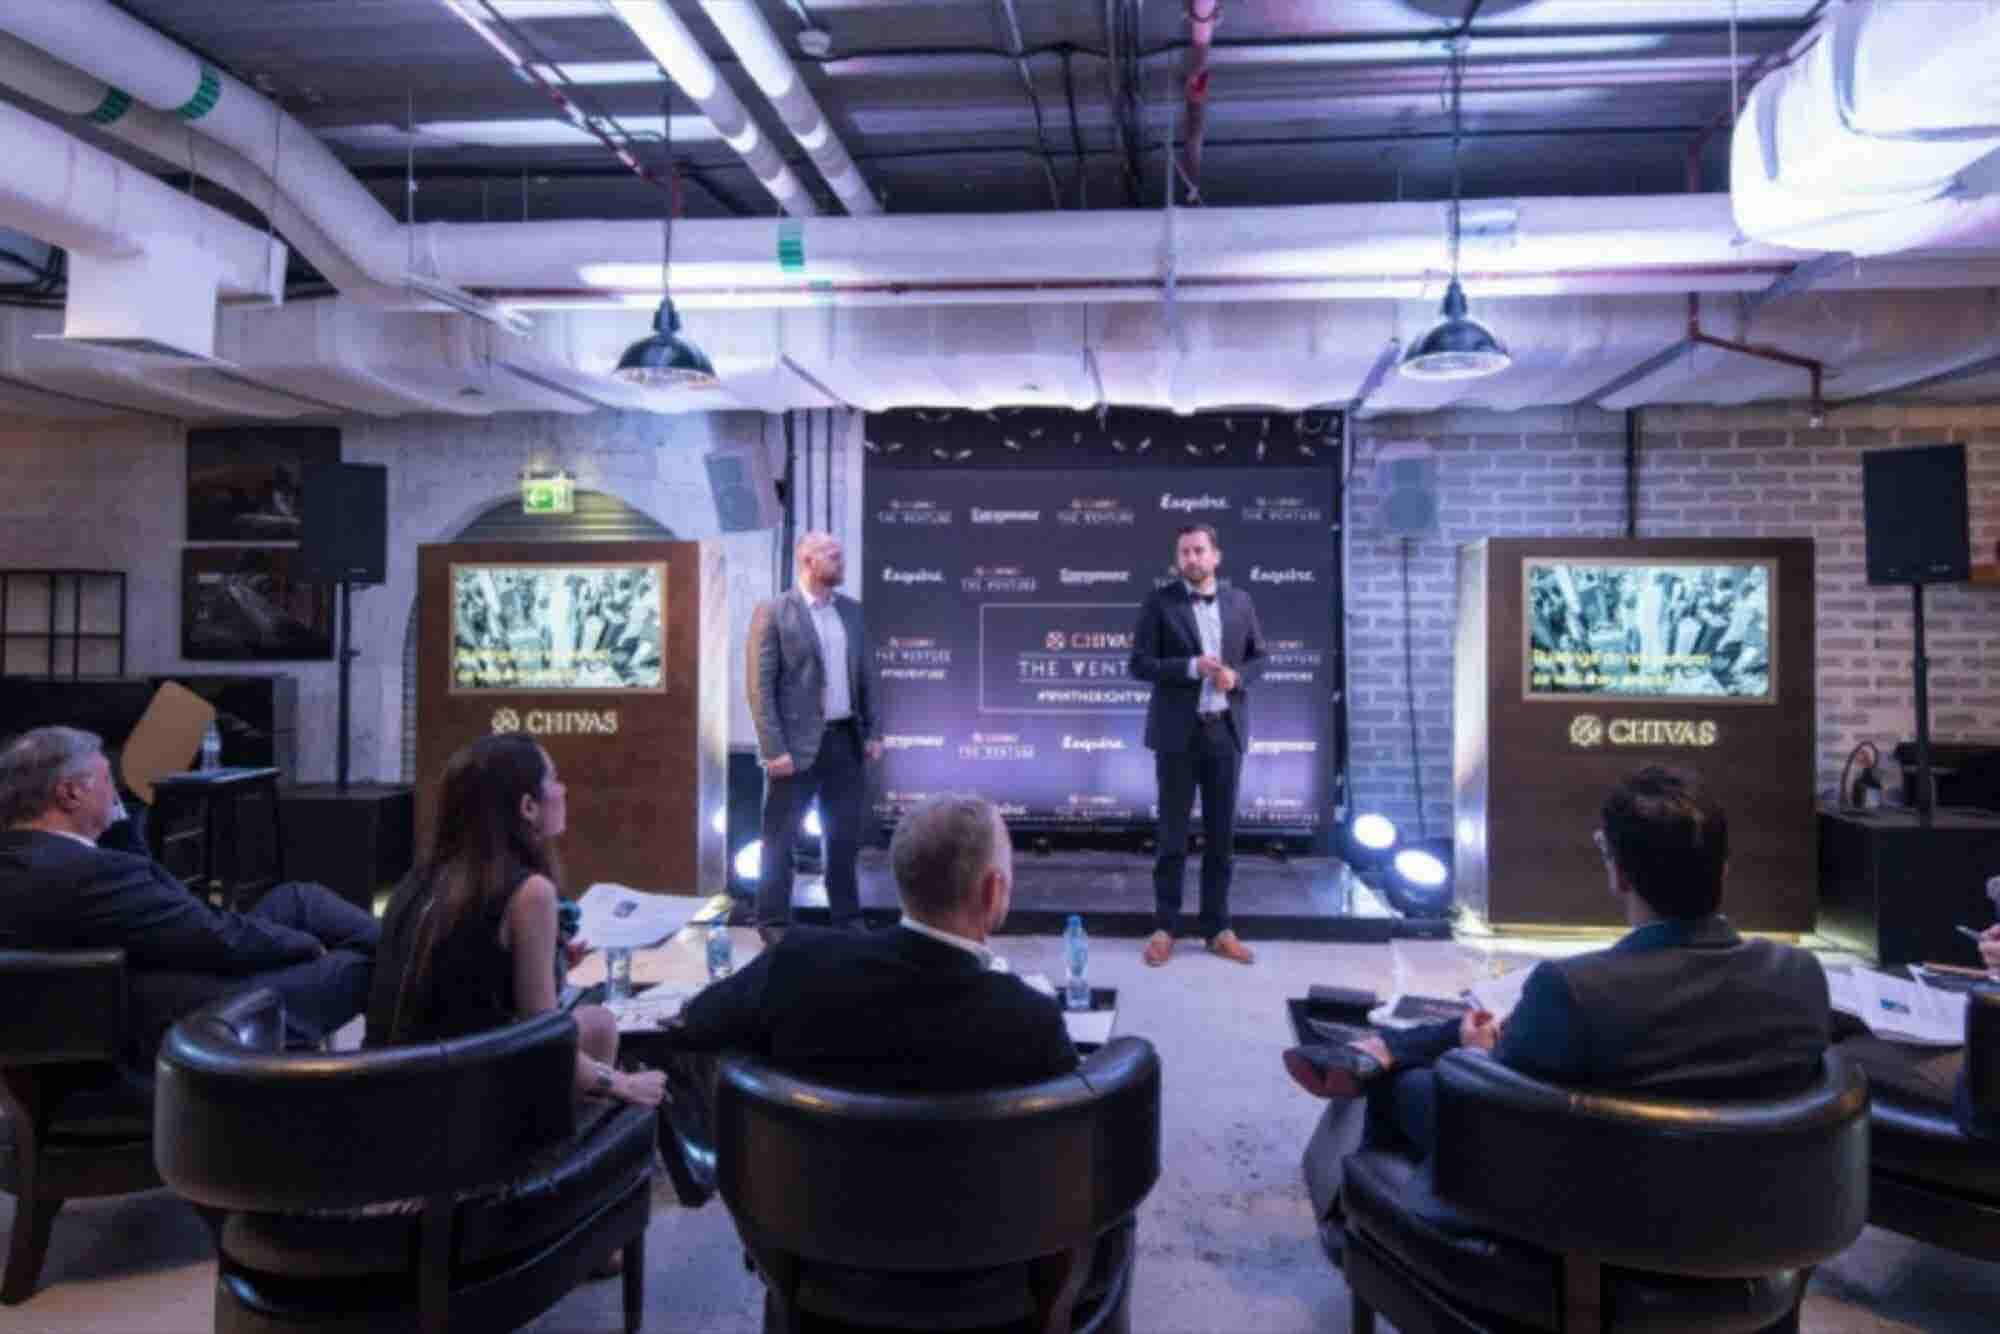 Global Startup Competition The Venture 2017 Launches US$1 Million Fund